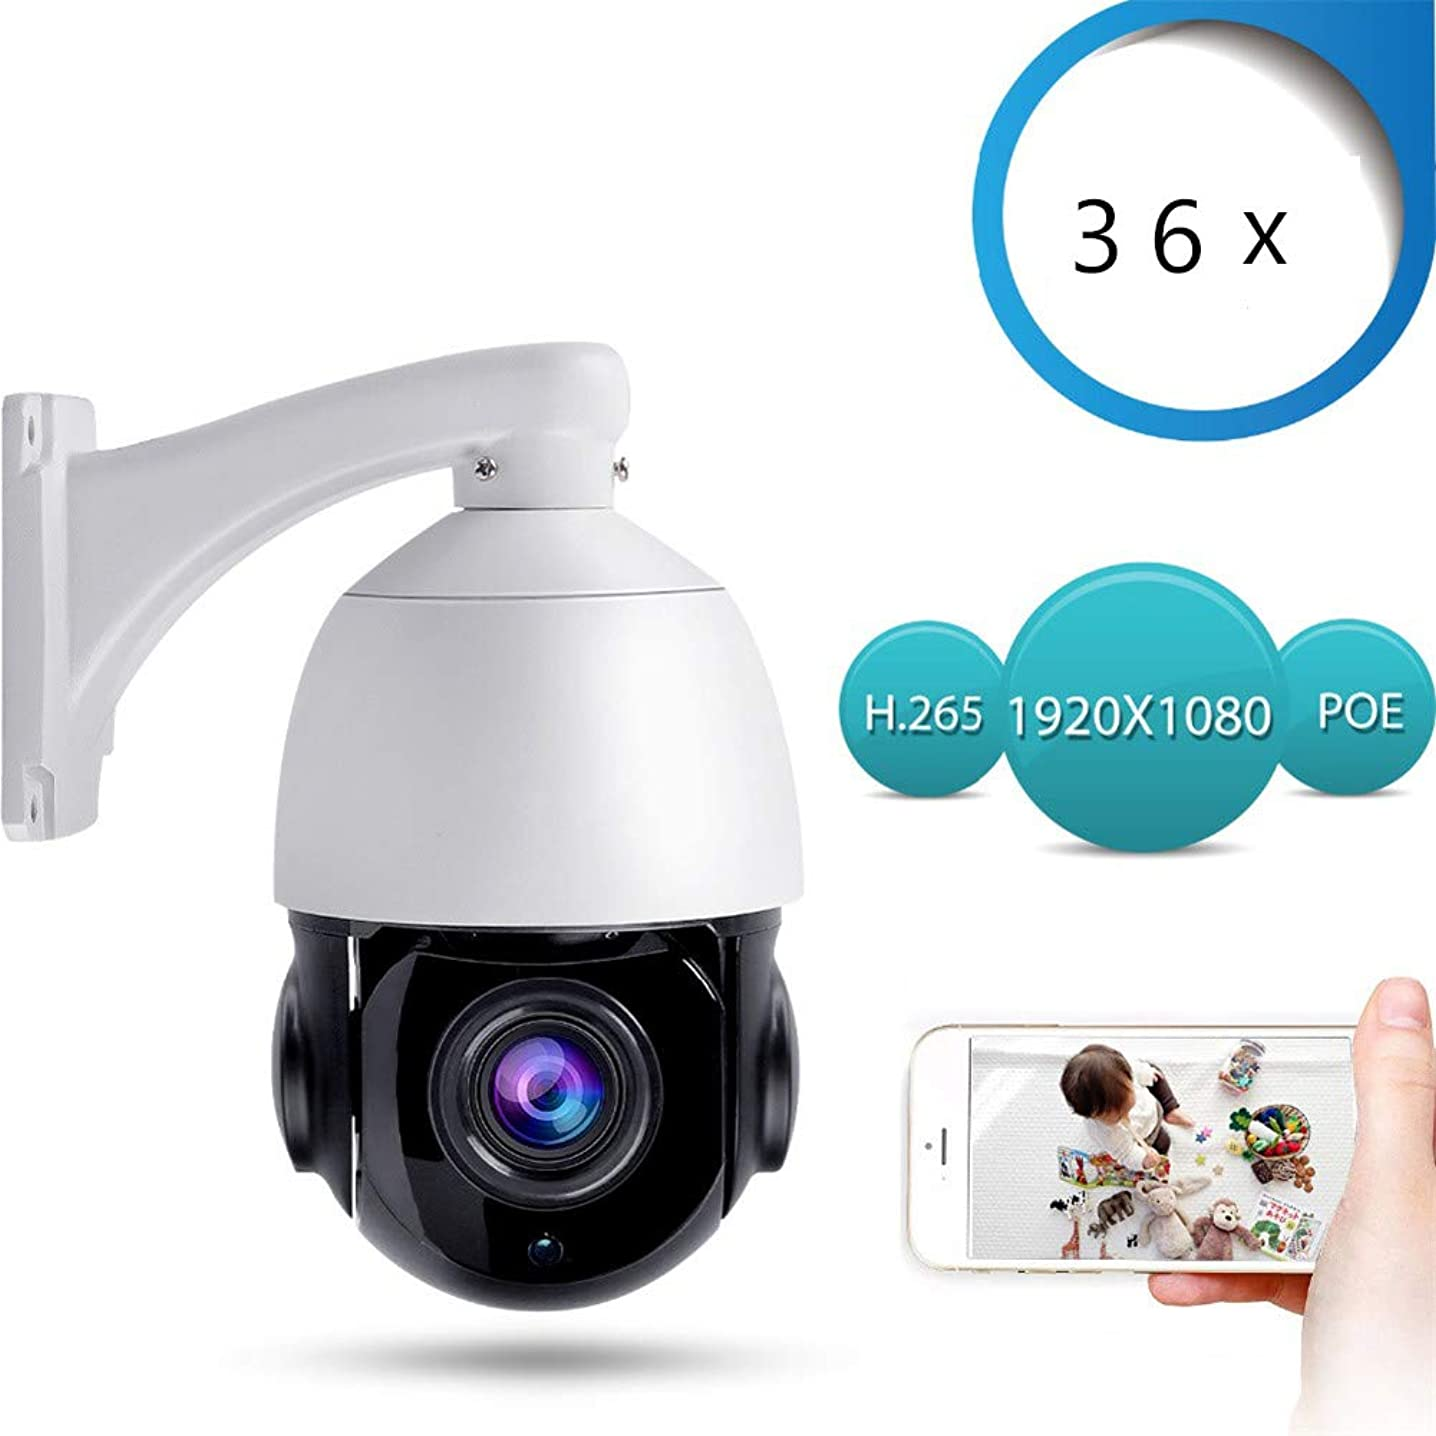 AINGOL PoE+ PTZ Security Camera, 36X Optical Zoom PTZ Camera,Night Vision, 2.0MP Waterproof Support Automatic Tracking 50M IR Outdoor CCTV Camera